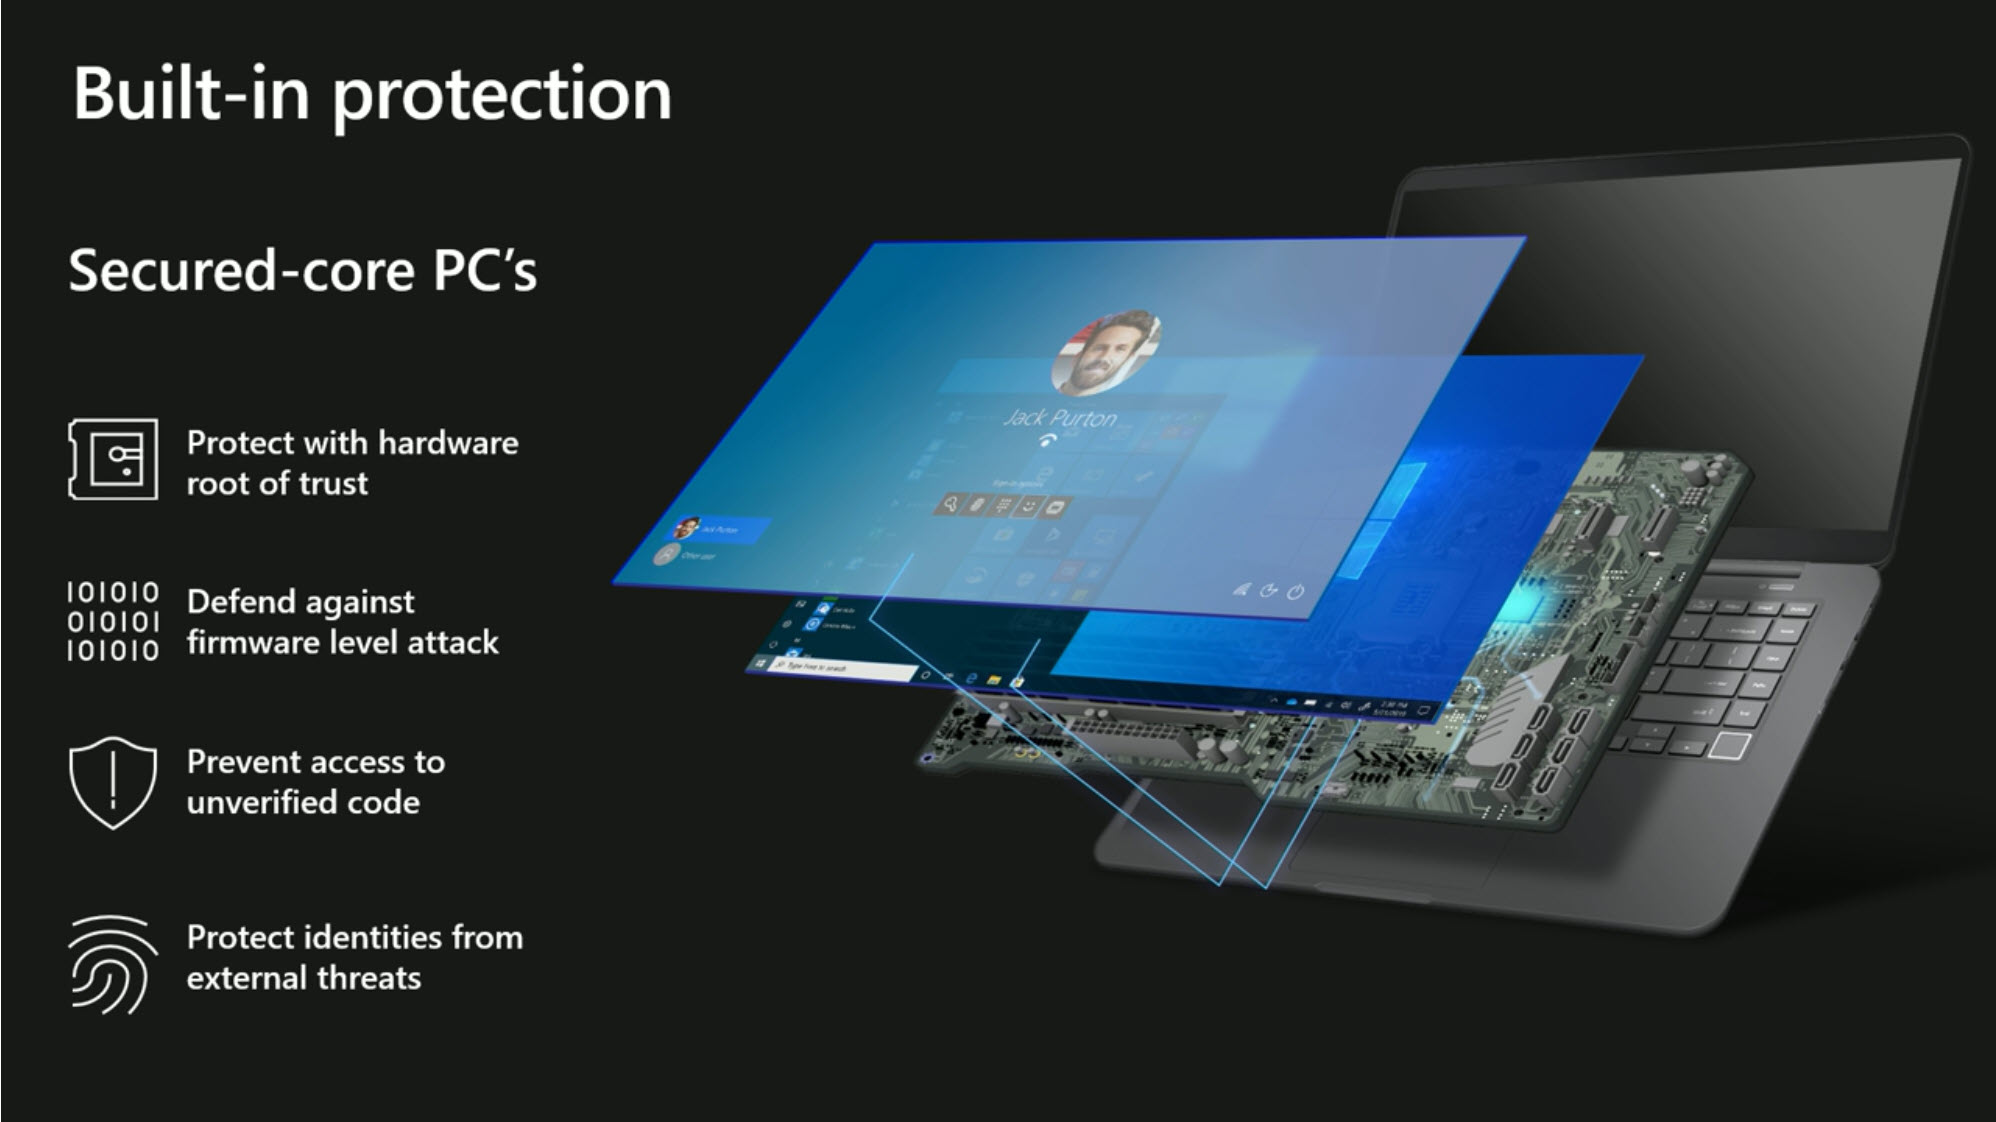 Built-In Protection in Hardware